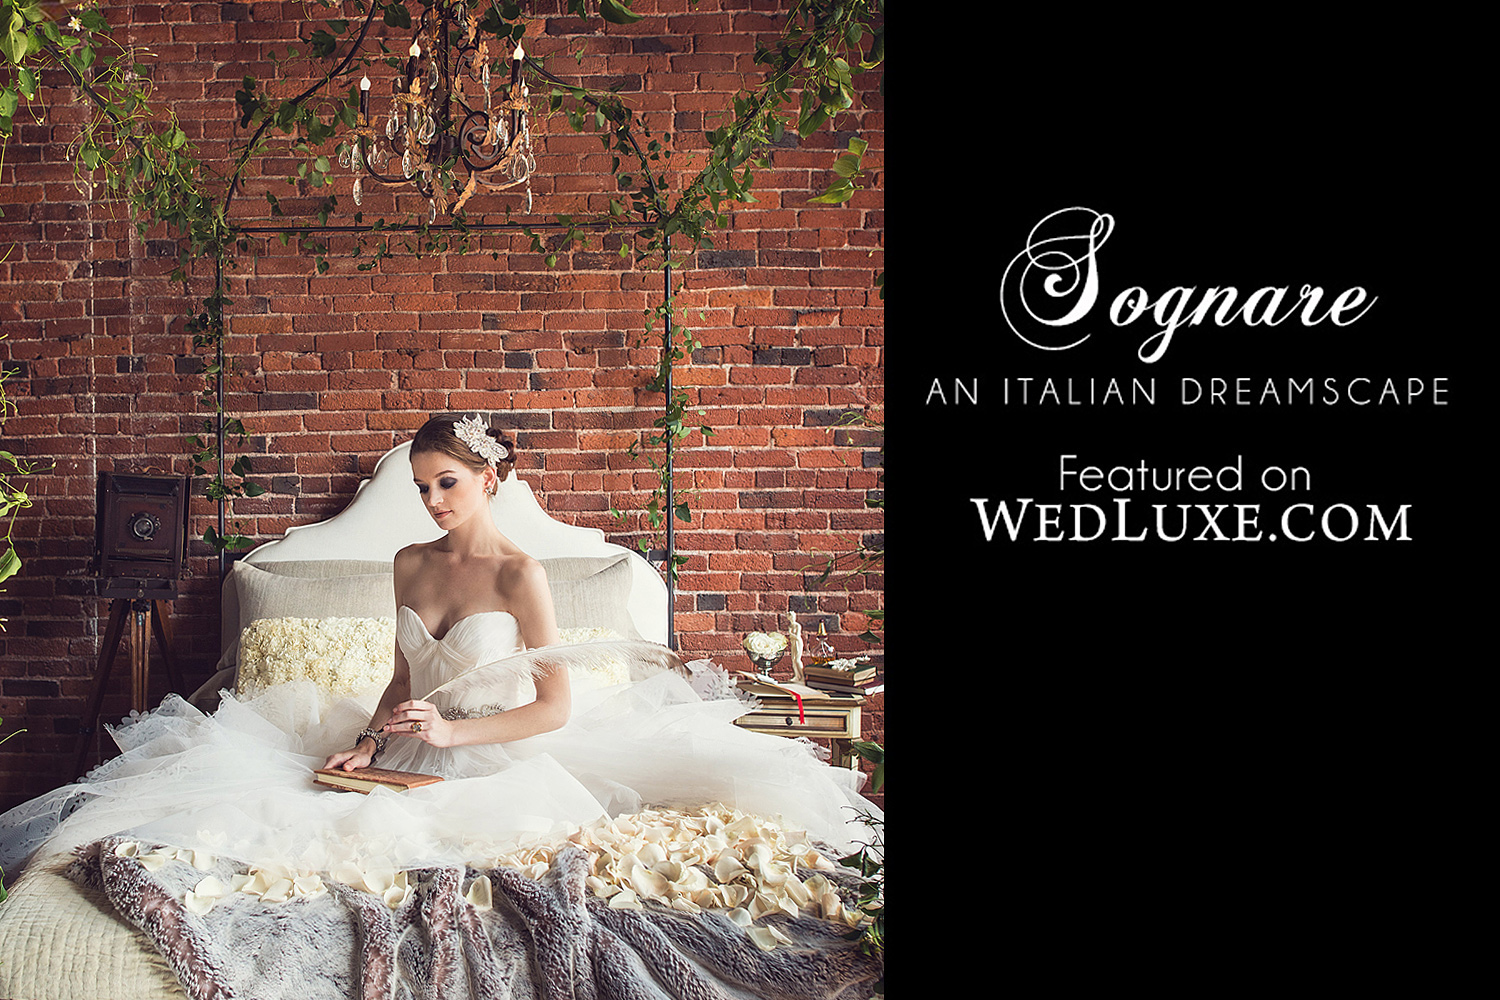 cover_Sognare_Italian_Dreamscape_Yaletown_Wedding_Gallery_Photo.jpg